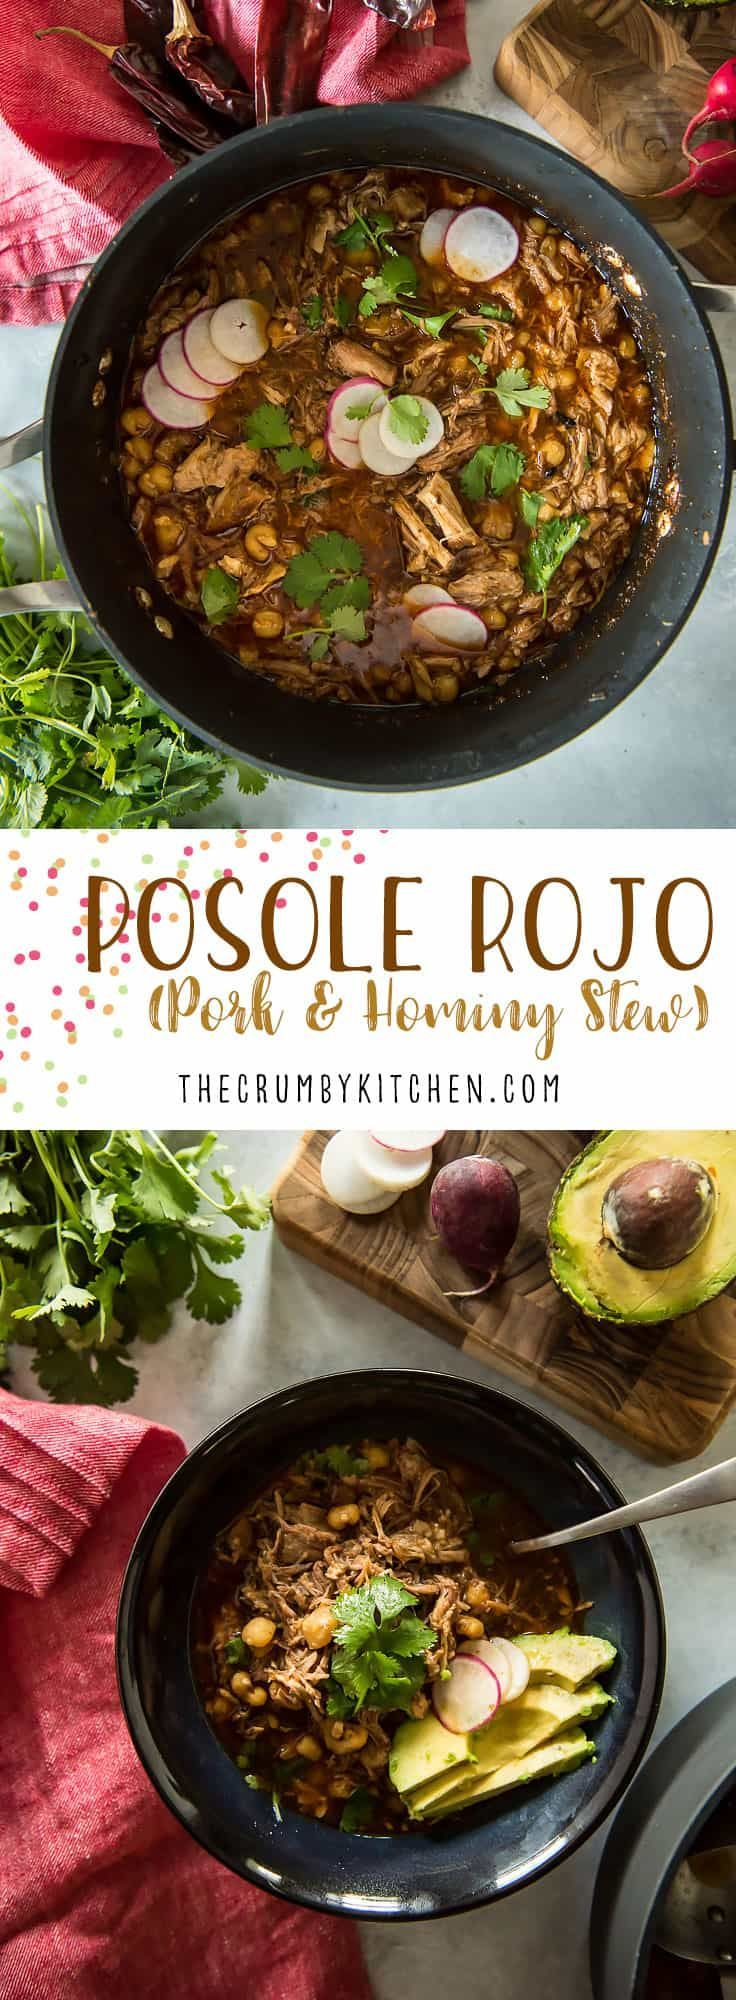 Stay warm this winter with a big bowl of Posole Rojo! This traditional hearty chile, pork, and hominy stew takes some time on the stovetop, but the deliciously spicy results are totally worth the wait! #posolerojo #posole #recipes #pozole #recipe #pork #stew #spicy #chiles #hominy #comfortfood